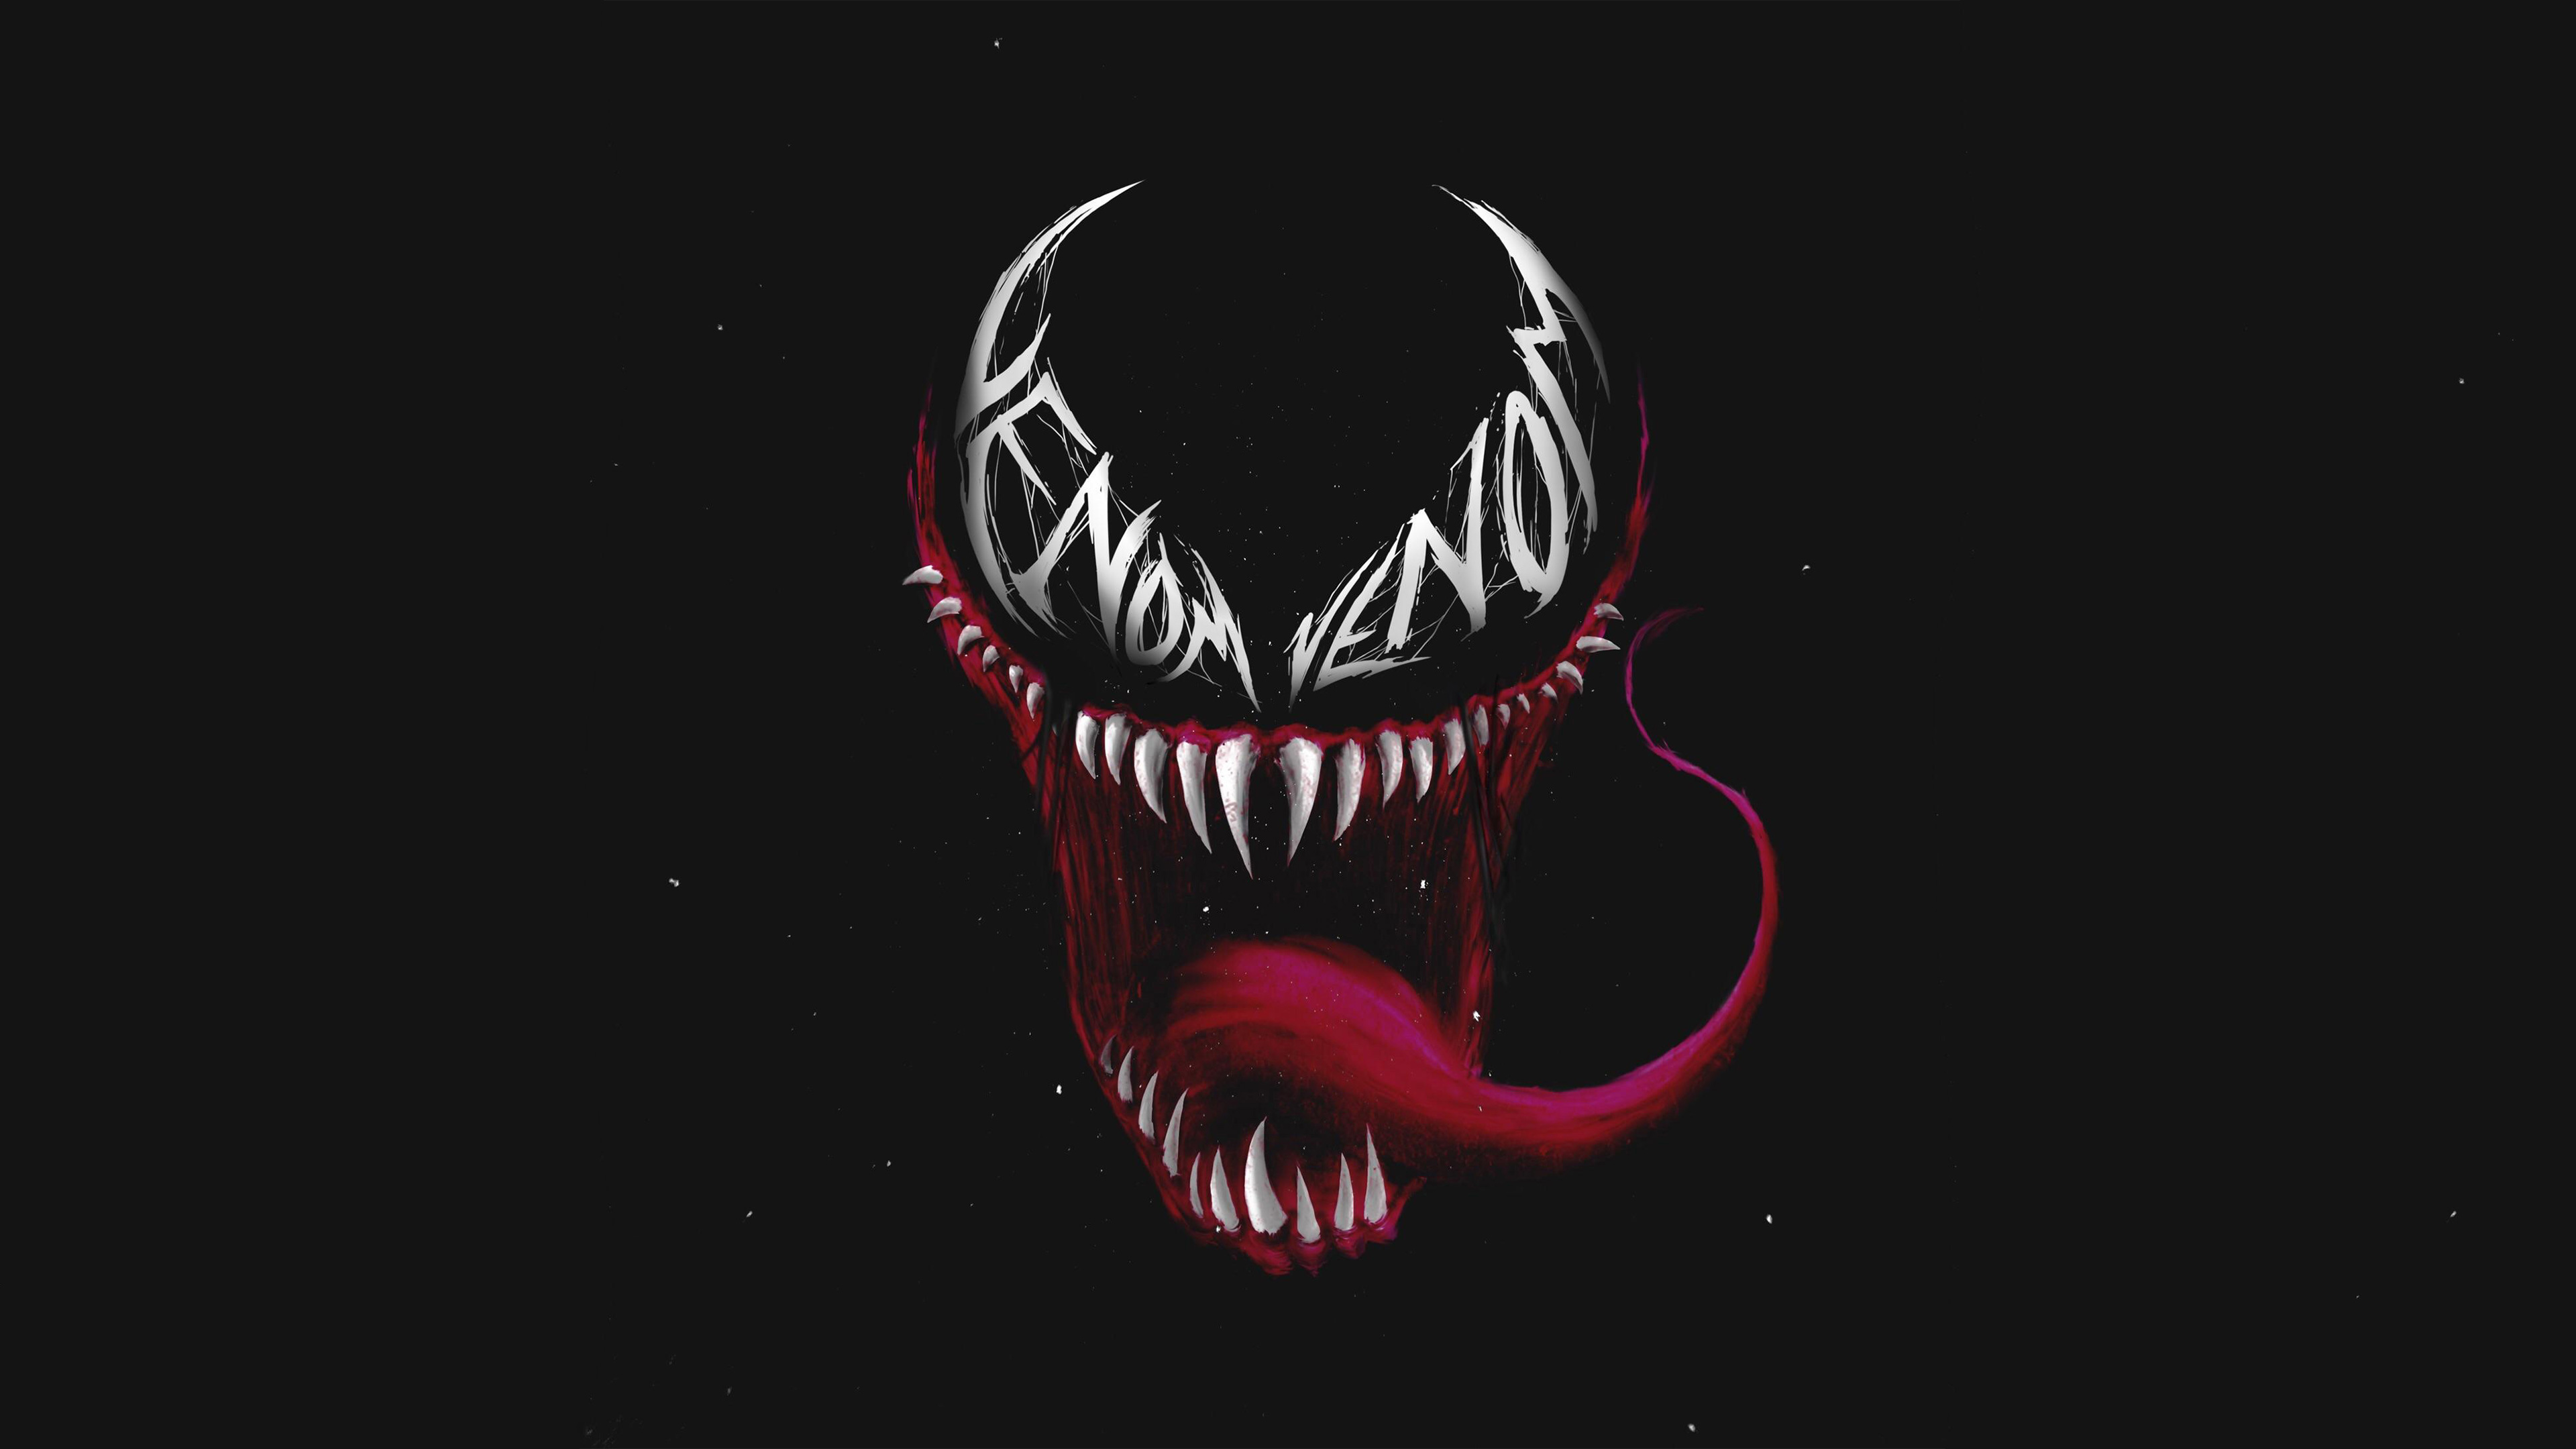 Venom Art 4k Wallpaper Best Wallpapers